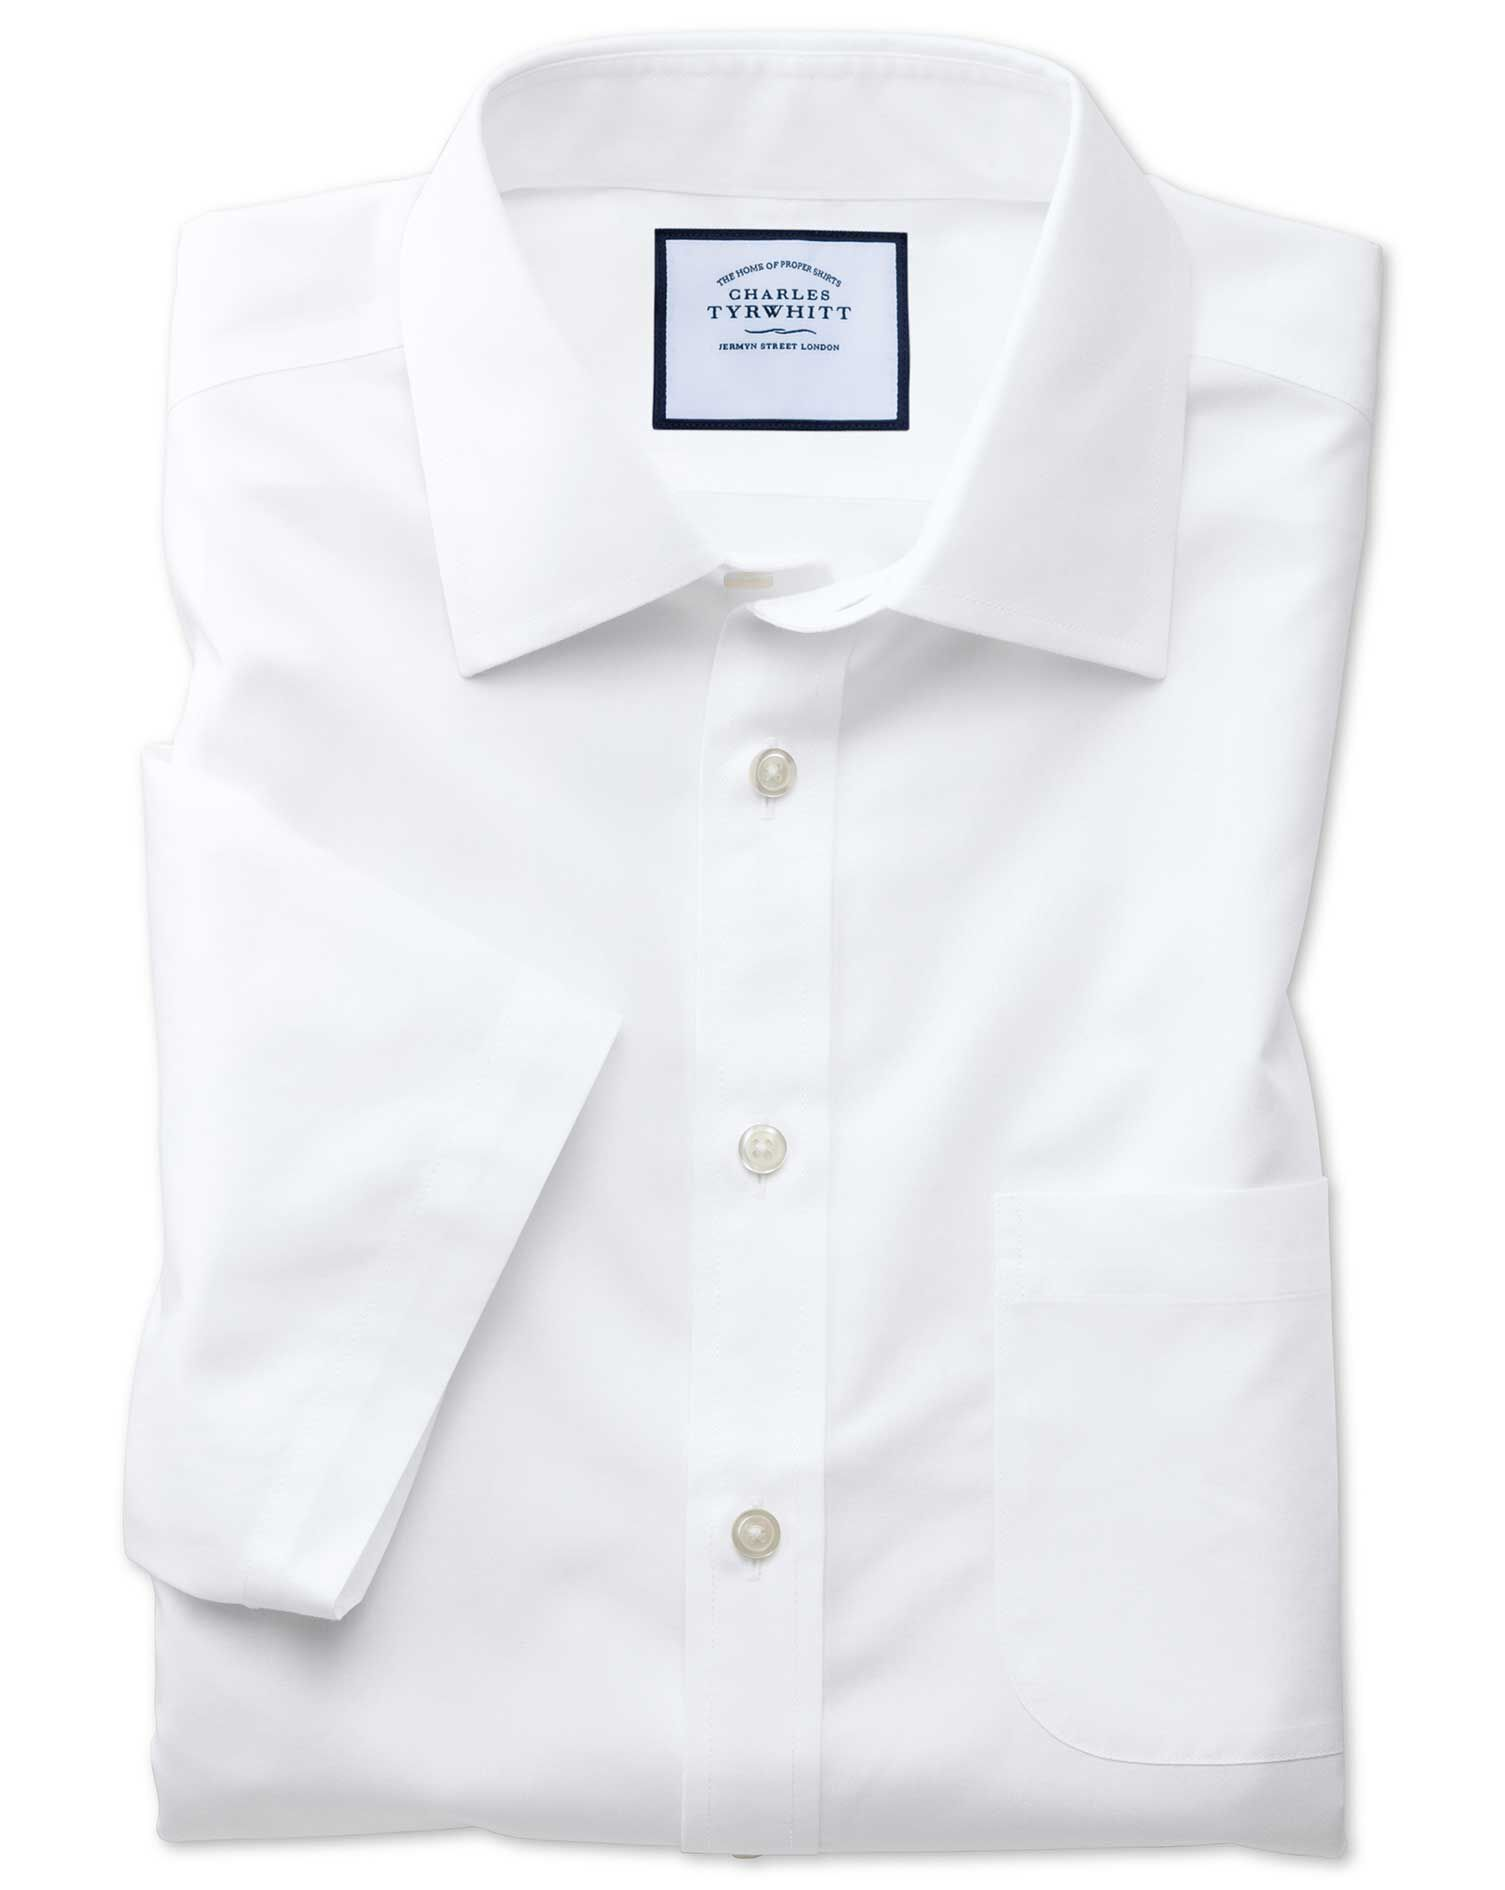 Slim Fit Non-Iron Poplin Short Sleeve White Cotton Formal Shirt Size 16/Short by Charles Tyrwhitt